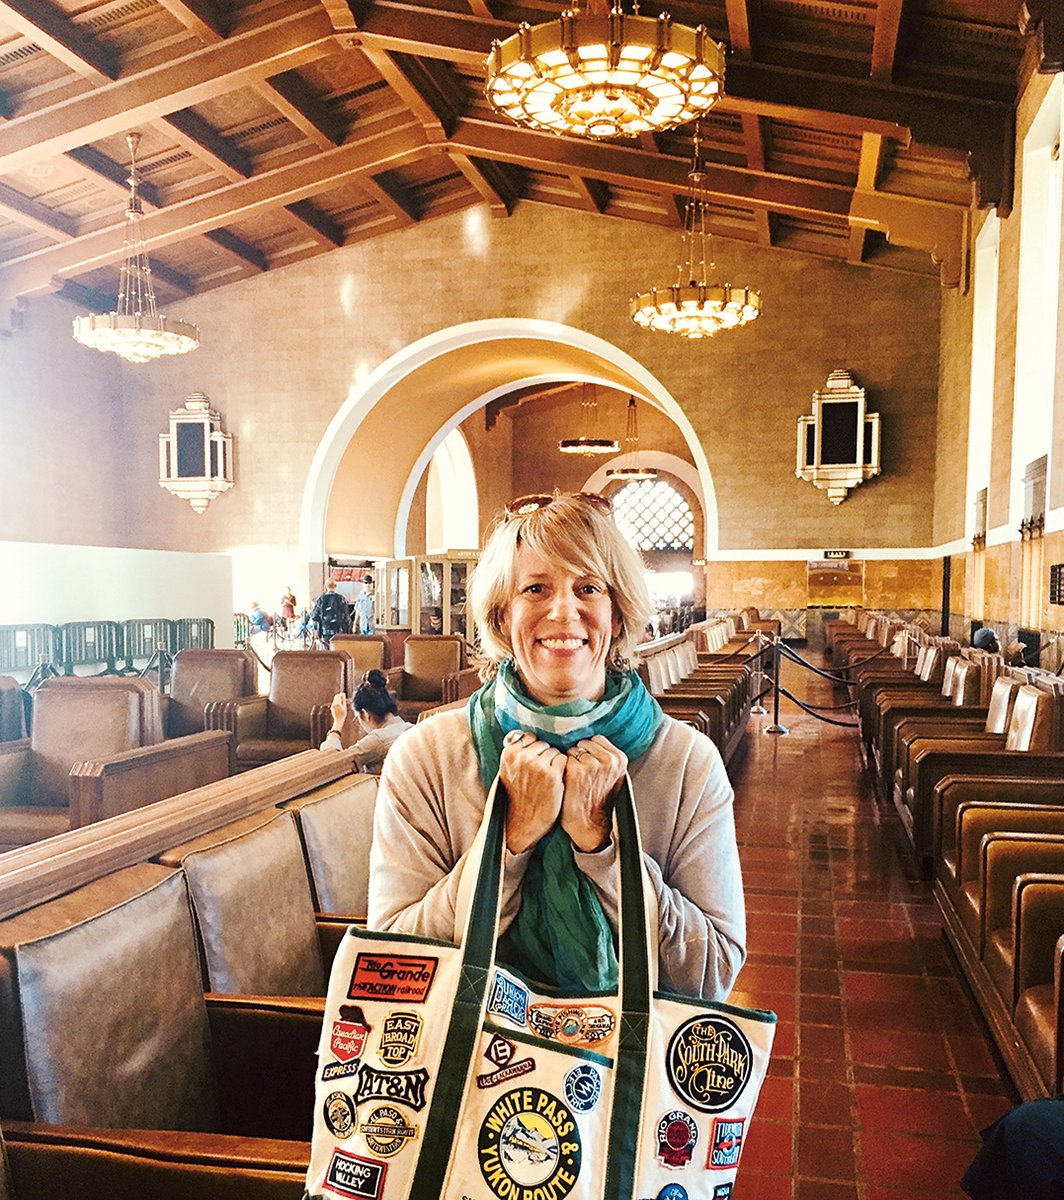 The author, shown at Los Angeles's Union Station, has taken just about every train route Amtrak offers—some more than once. Photograph by Jill Sharer.